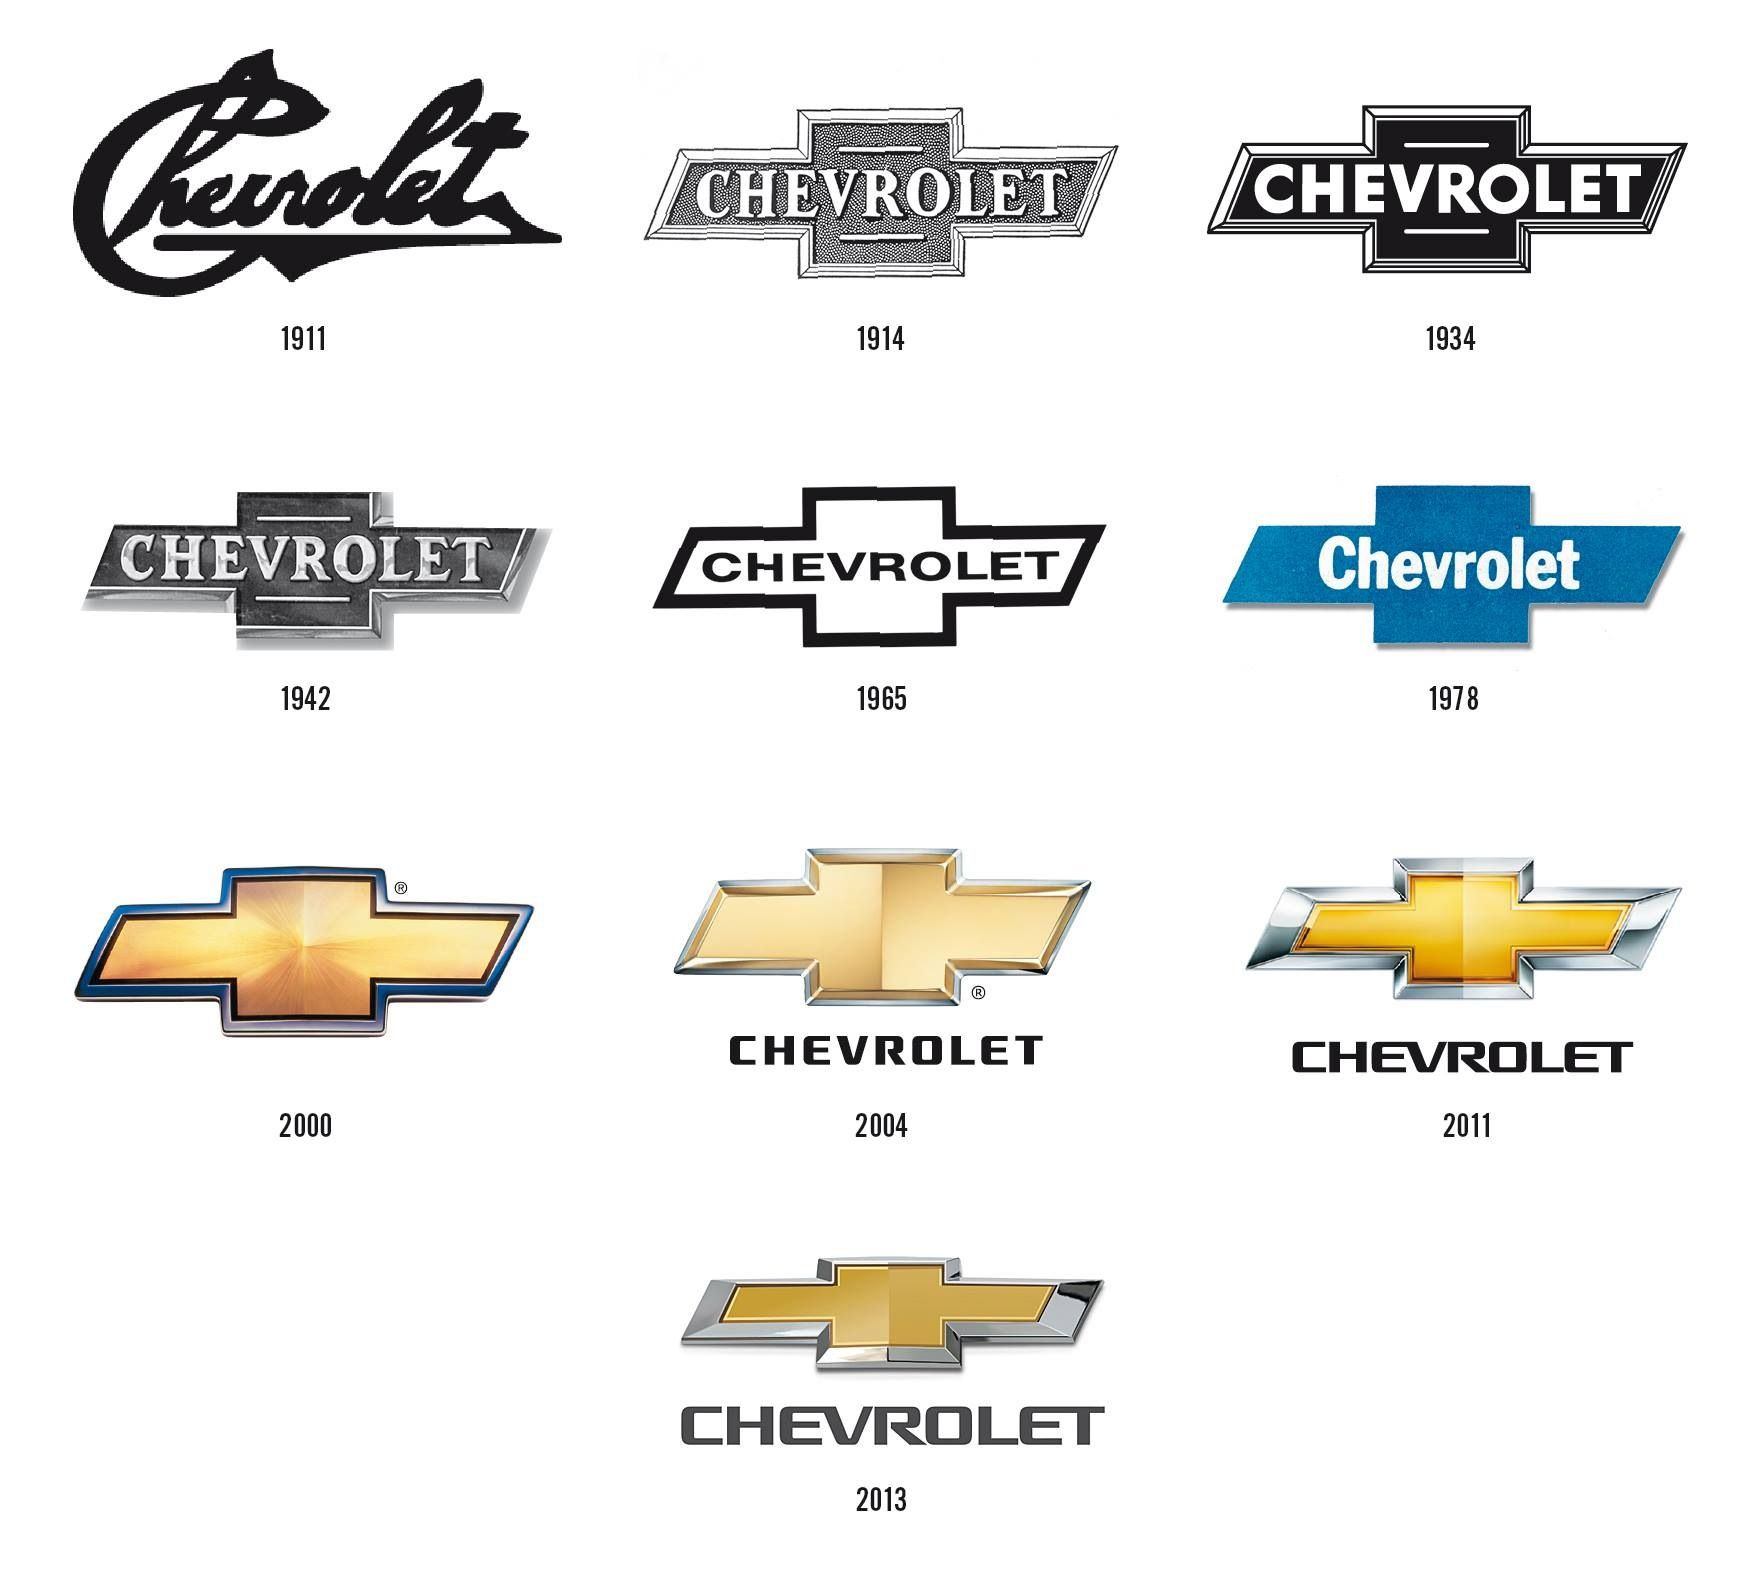 Forrest chevrolet started out as a chevrolet dealership in dave smith motors started out as a chevrolet dealership in idahos silver valley in the chevy logo has changed since then but were still selling chevys biocorpaavc Images